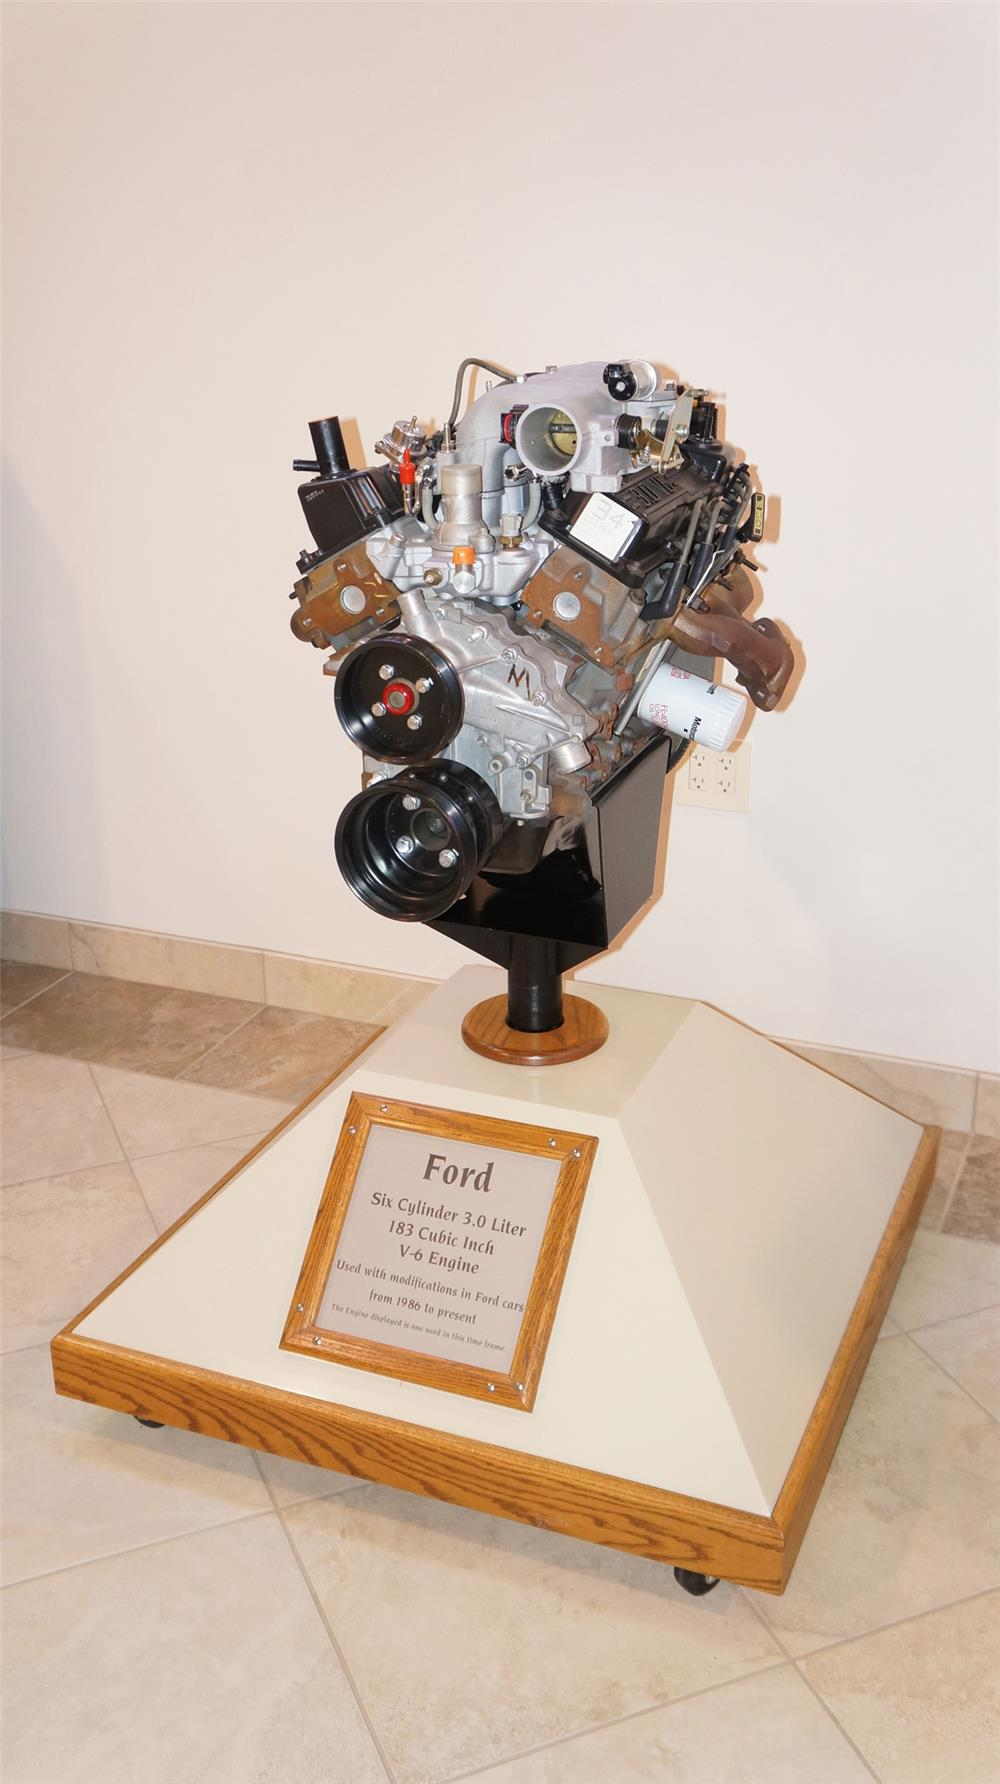 Ford Six Cylinder 3.o Liter 183 Cubic Inch V-6 engine on stand. - Front 3/4 - 179408